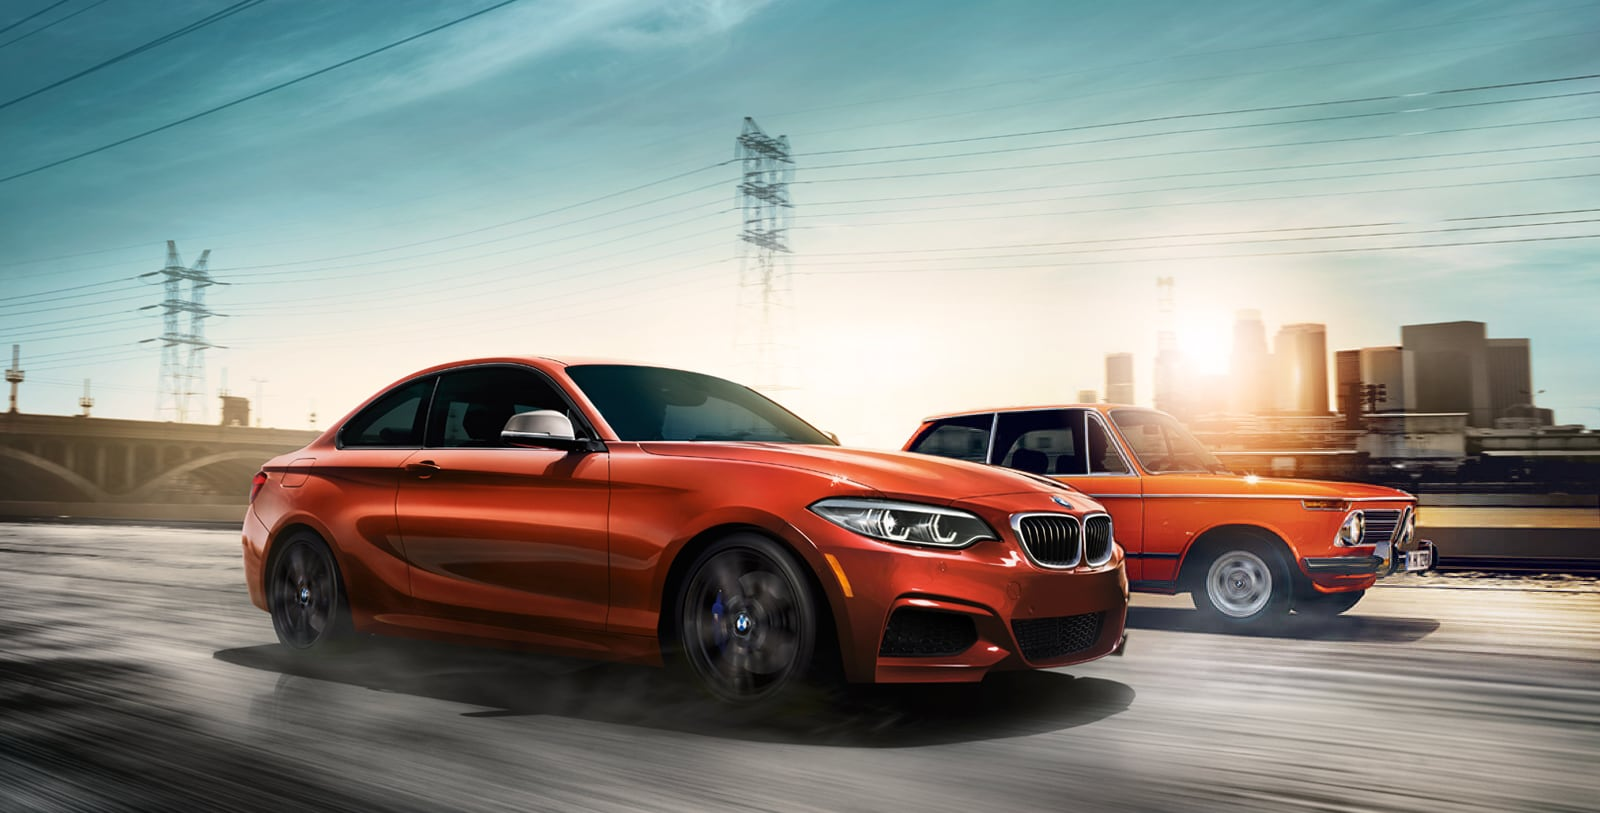 Style and capabilities of the 2020 BMW 2 Series